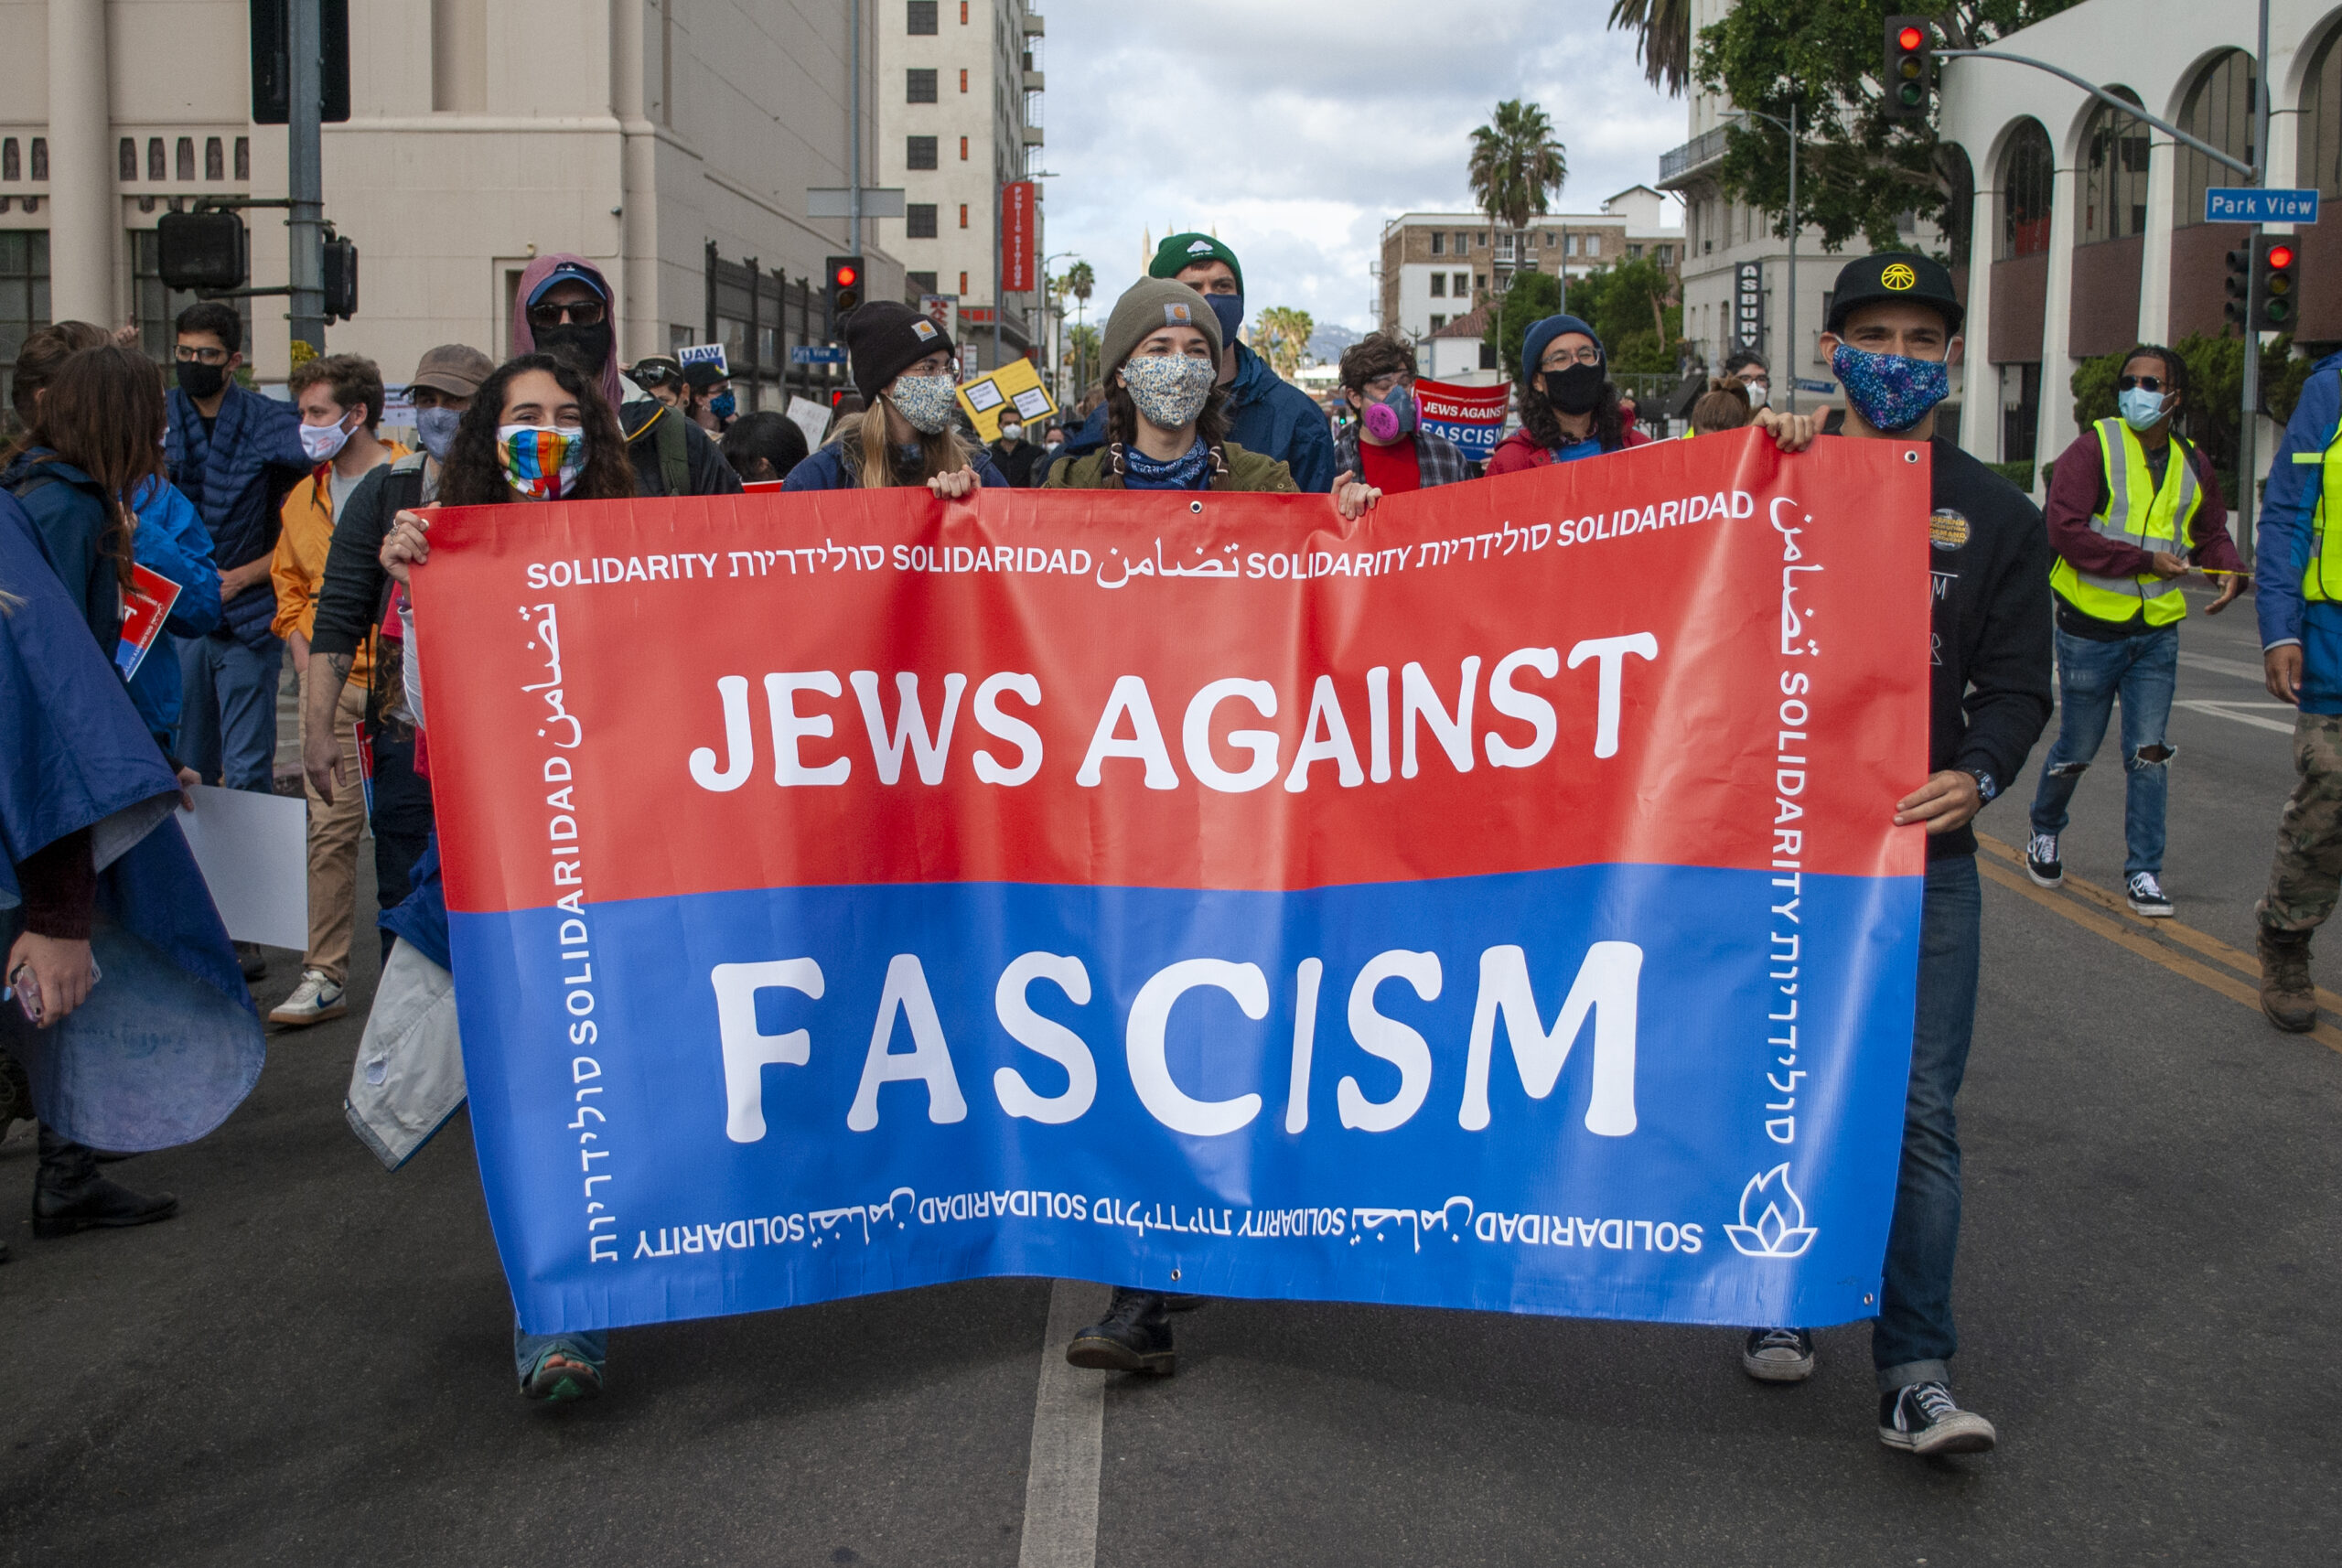 Jews Against Fascism